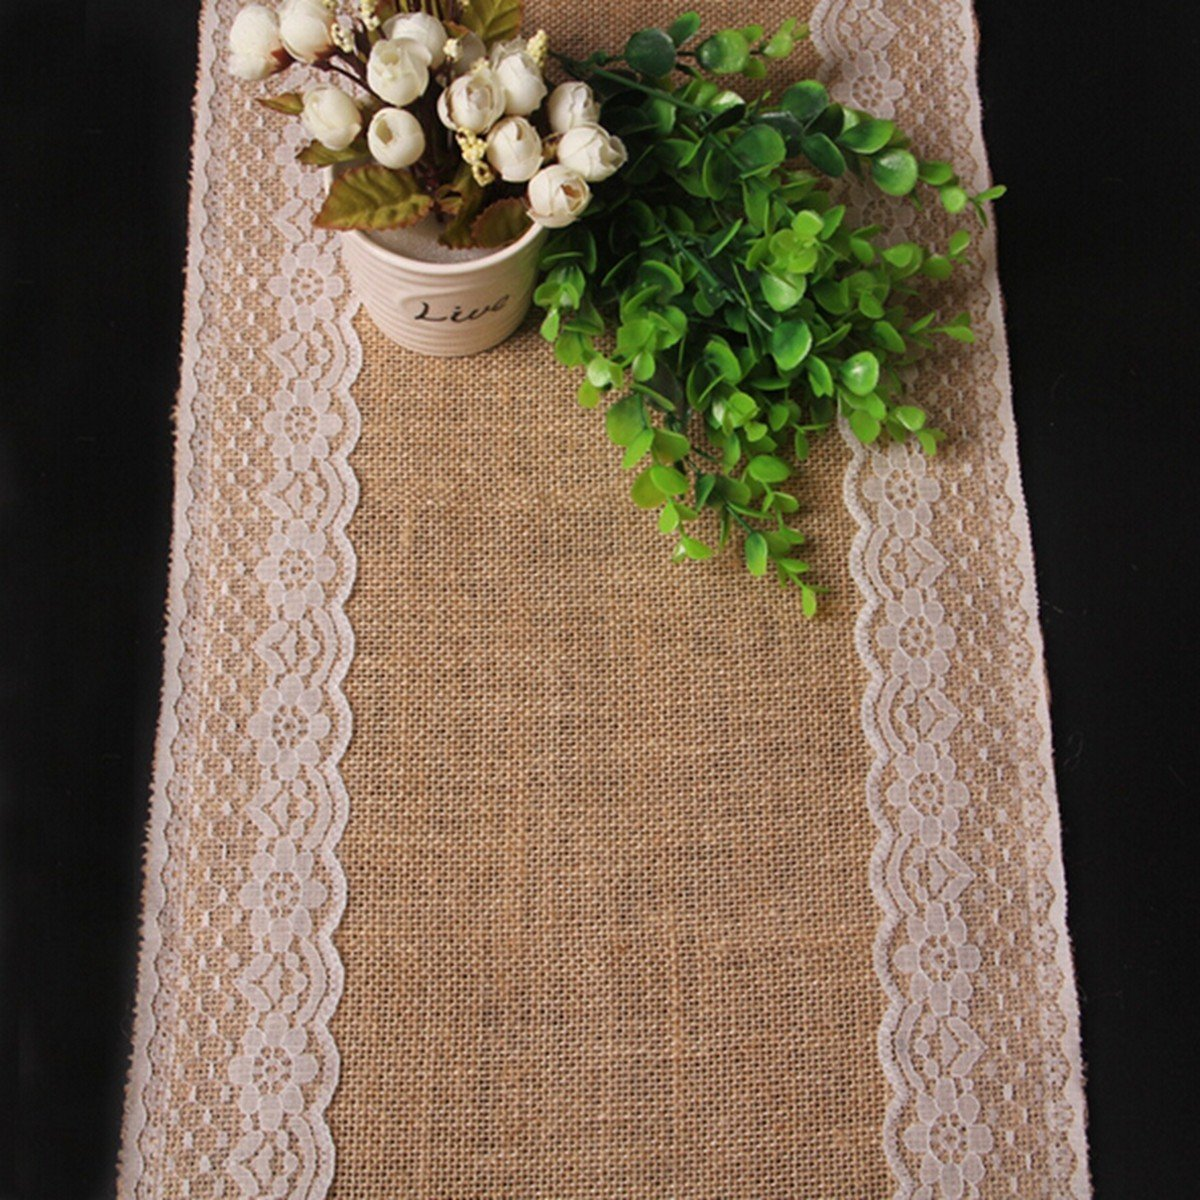 KING DO WAY Natural Hessian Jute Burlap Fabric Lace Table Runner Rustic Wedding Upholstery Decoration as picture 176cm x 30.5cm